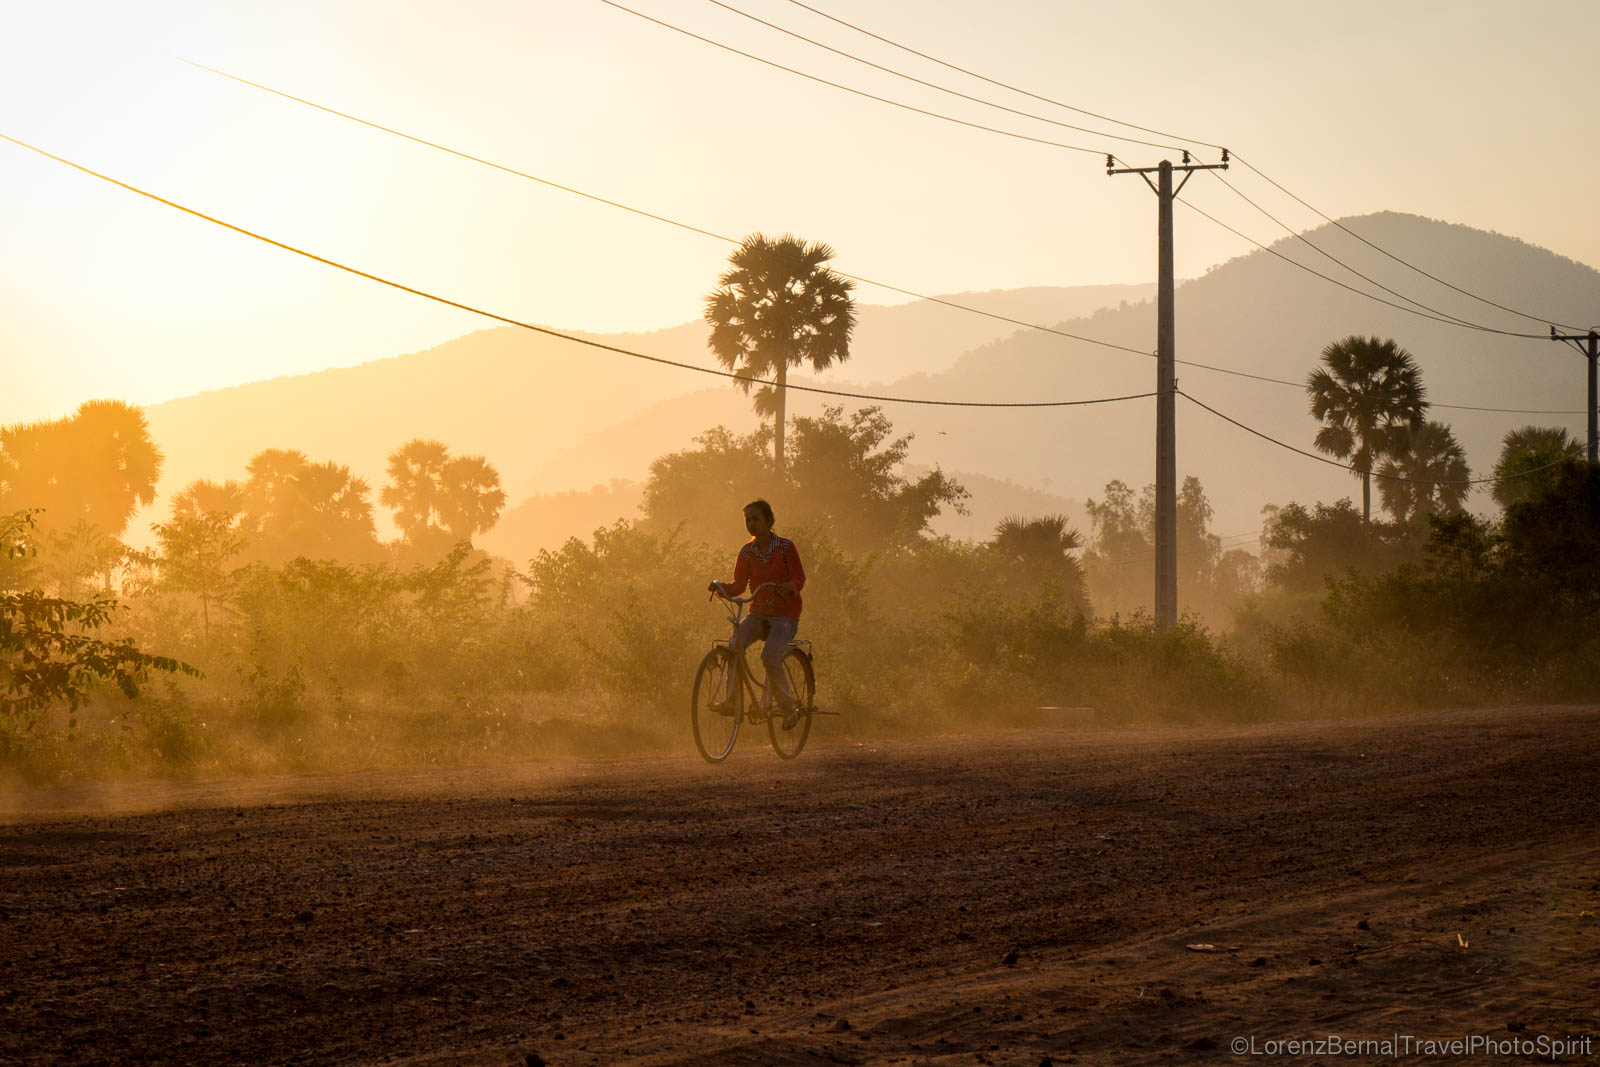 Cambodian child on bicycle in the backlight in Kampot countryside, Cambodia